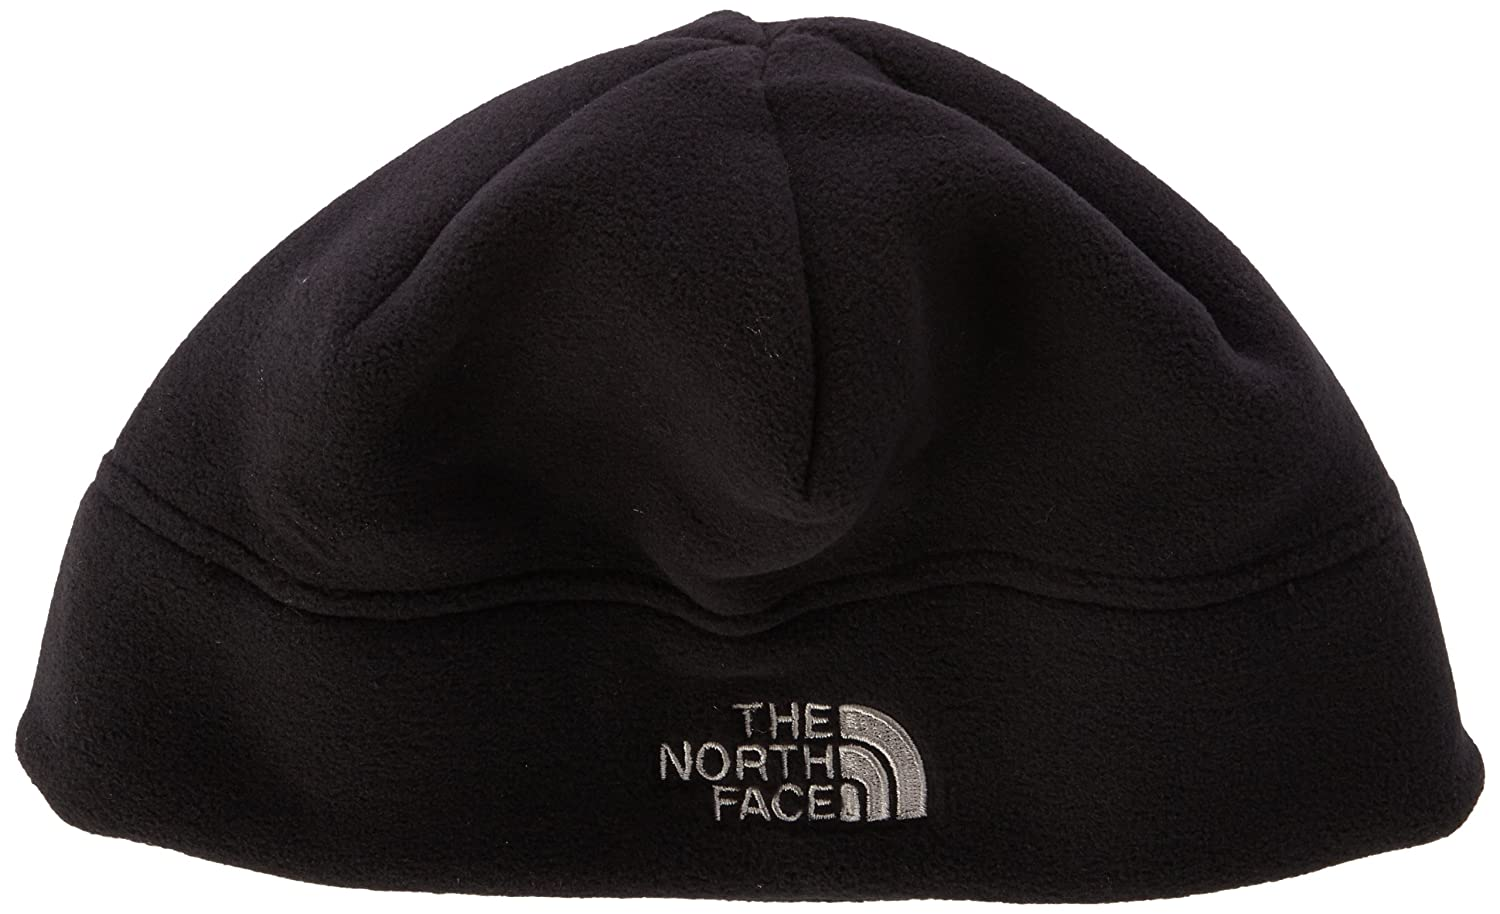 7a5bf147db9 The North Face Flash Adult s Outdoor Fleece Beanie available in TNF ...